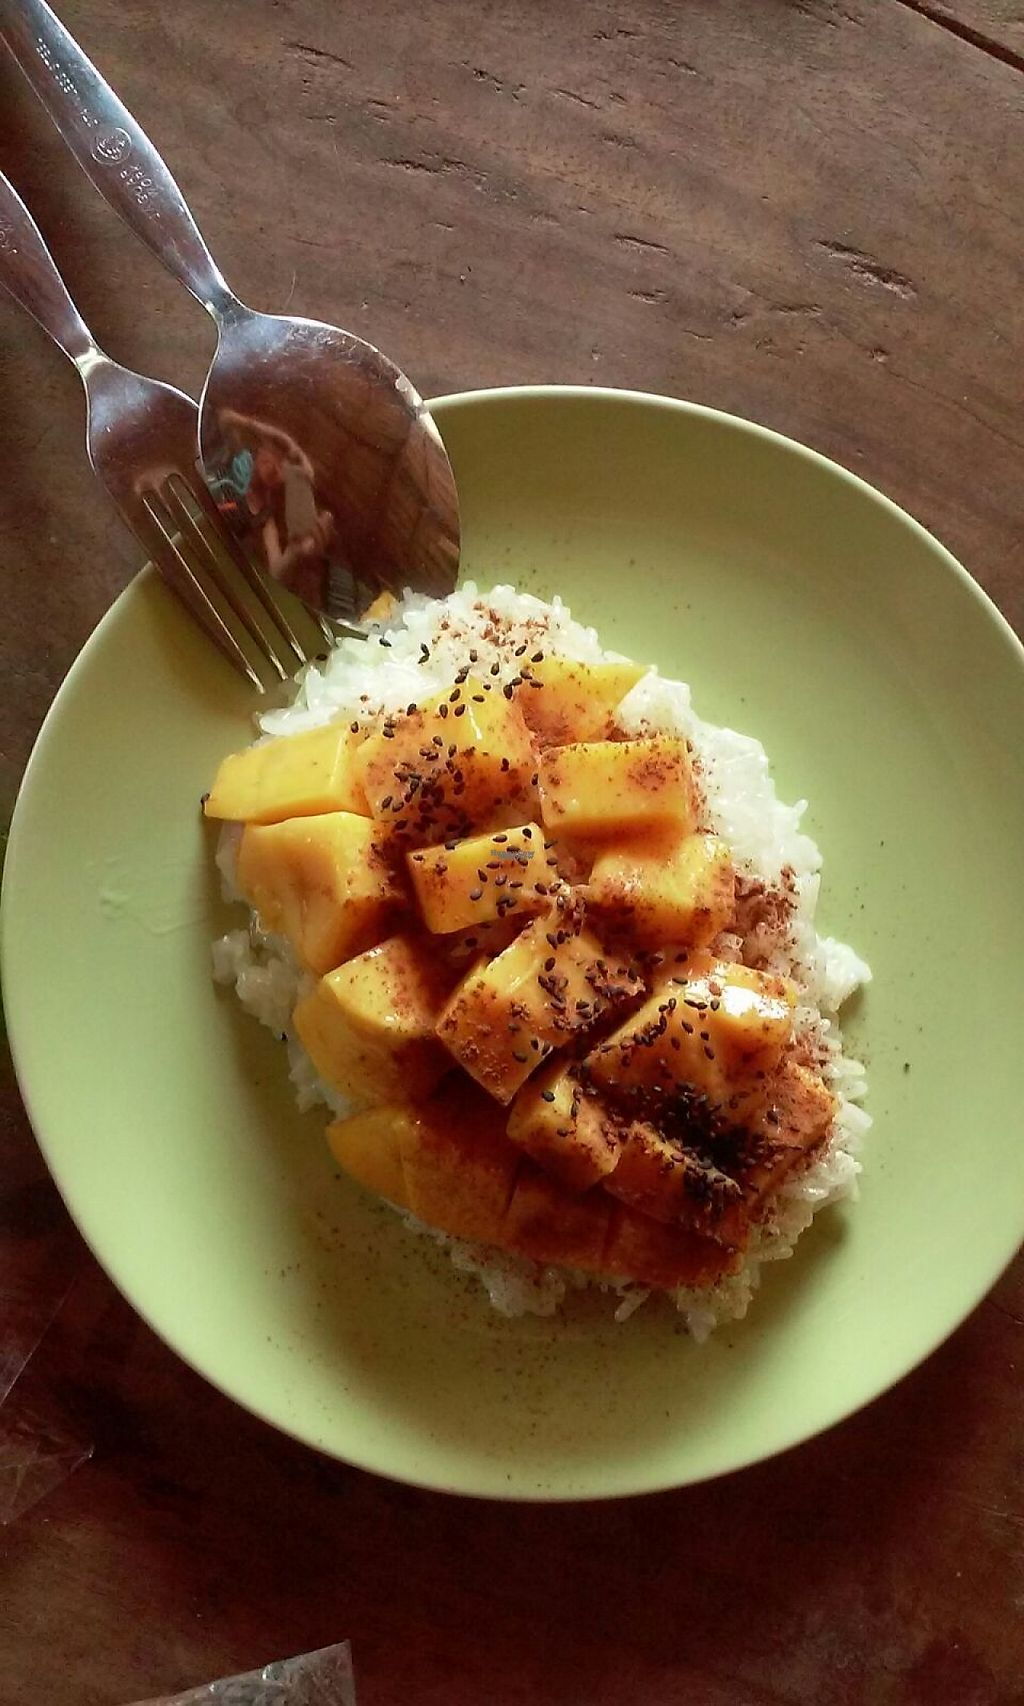 """Photo of The Garden of Nang  by <a href=""""/members/profile/Astravegan"""">Astravegan</a> <br/>Sticky Rice with mango <br/> April 24, 2017  - <a href='/contact/abuse/image/90402/251868'>Report</a>"""